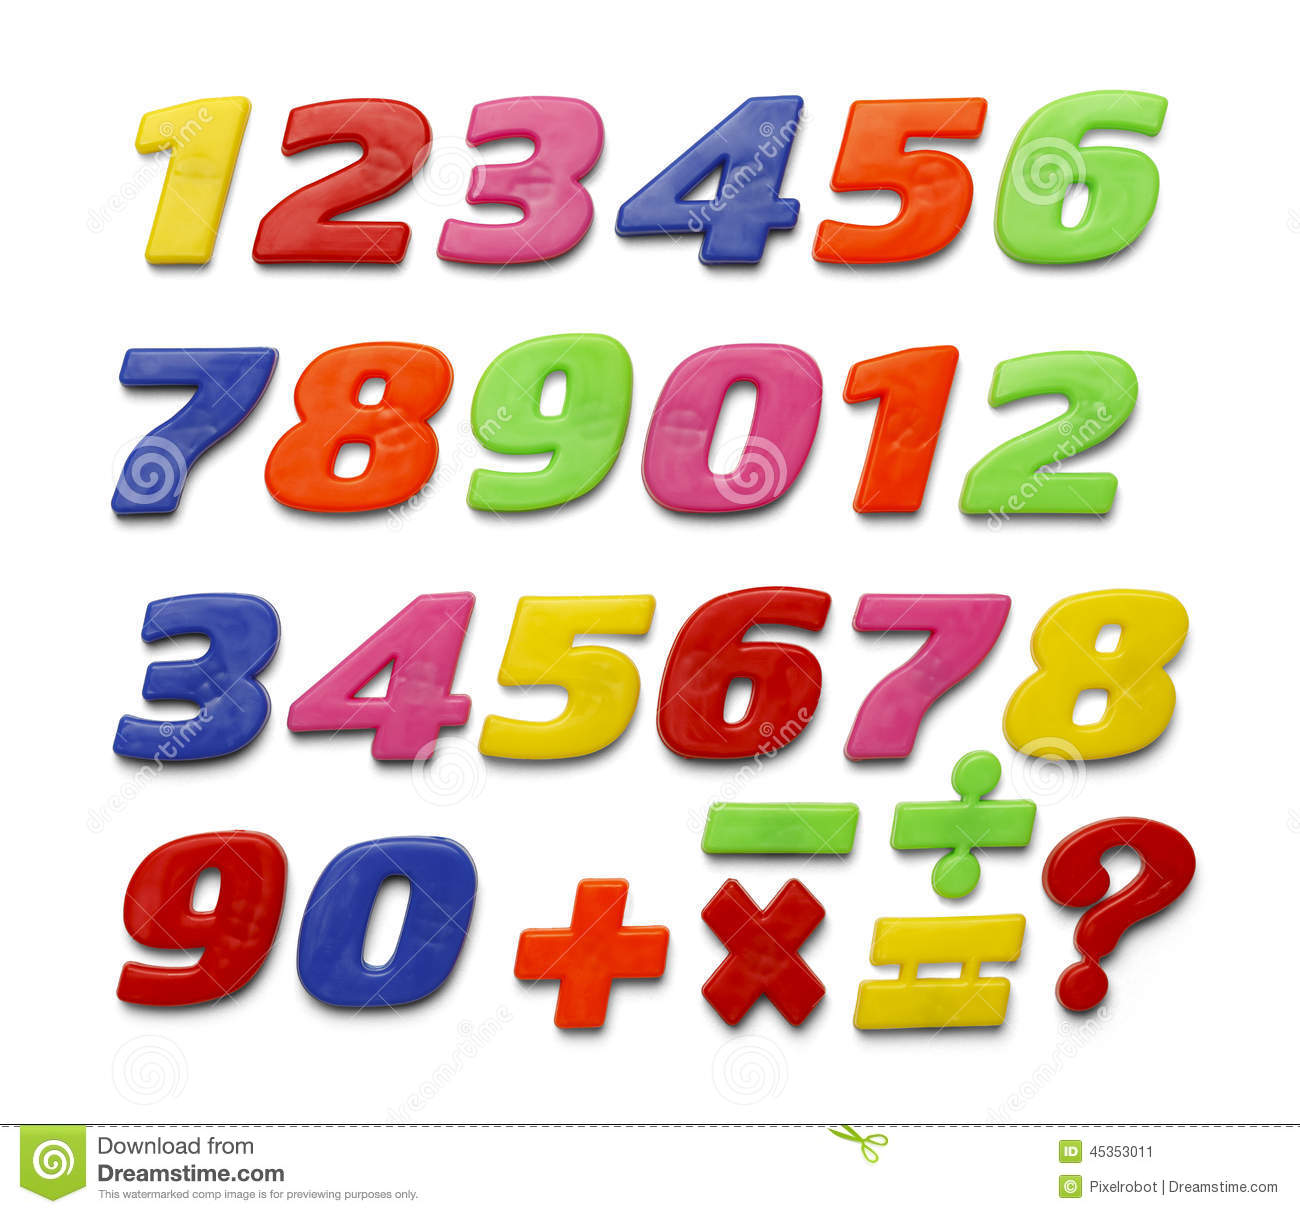 Colored plastic magnetic numbers stock photo for White magnetic letters and numbers